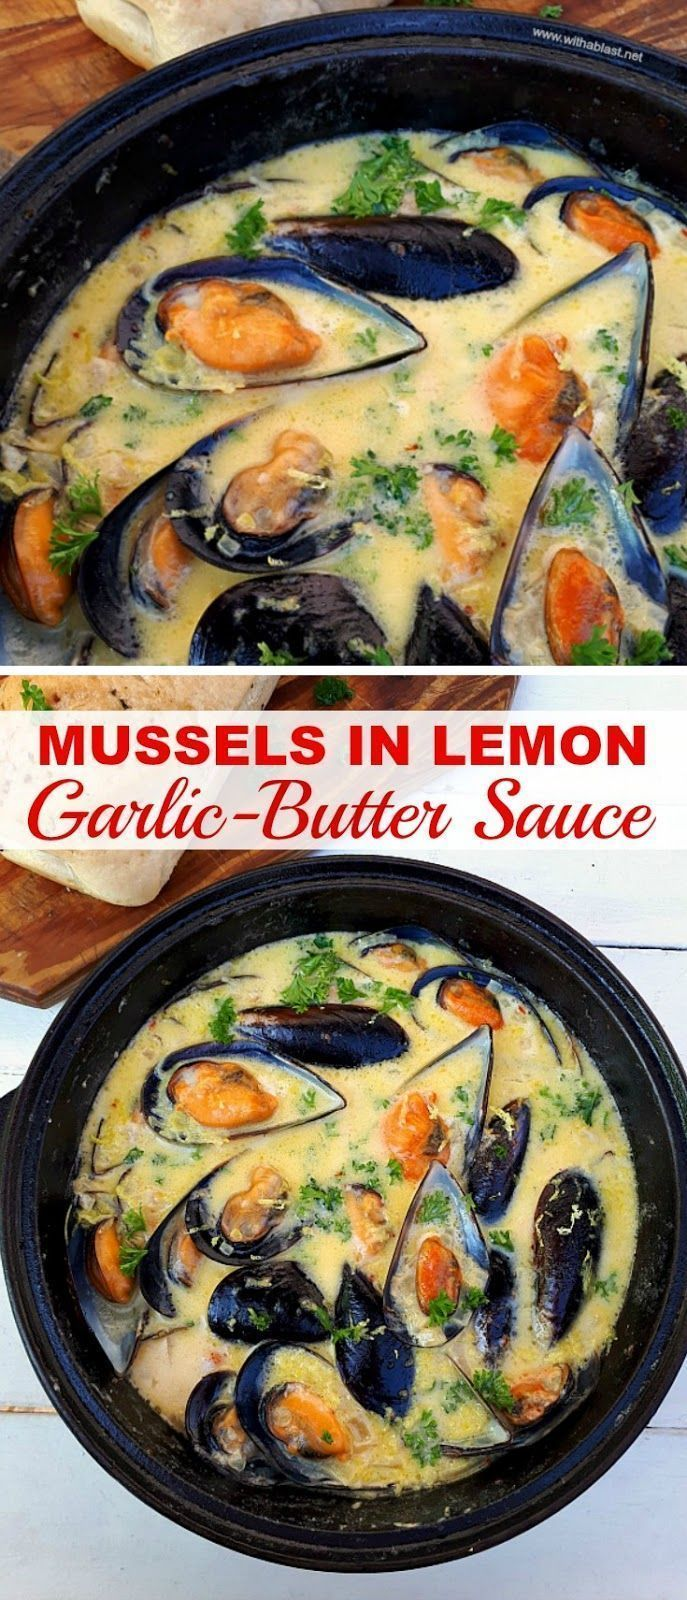 Creamy, garlic-butter Lemon Mussels ~ One of the most delicious appetizers ever ! #Appetizer